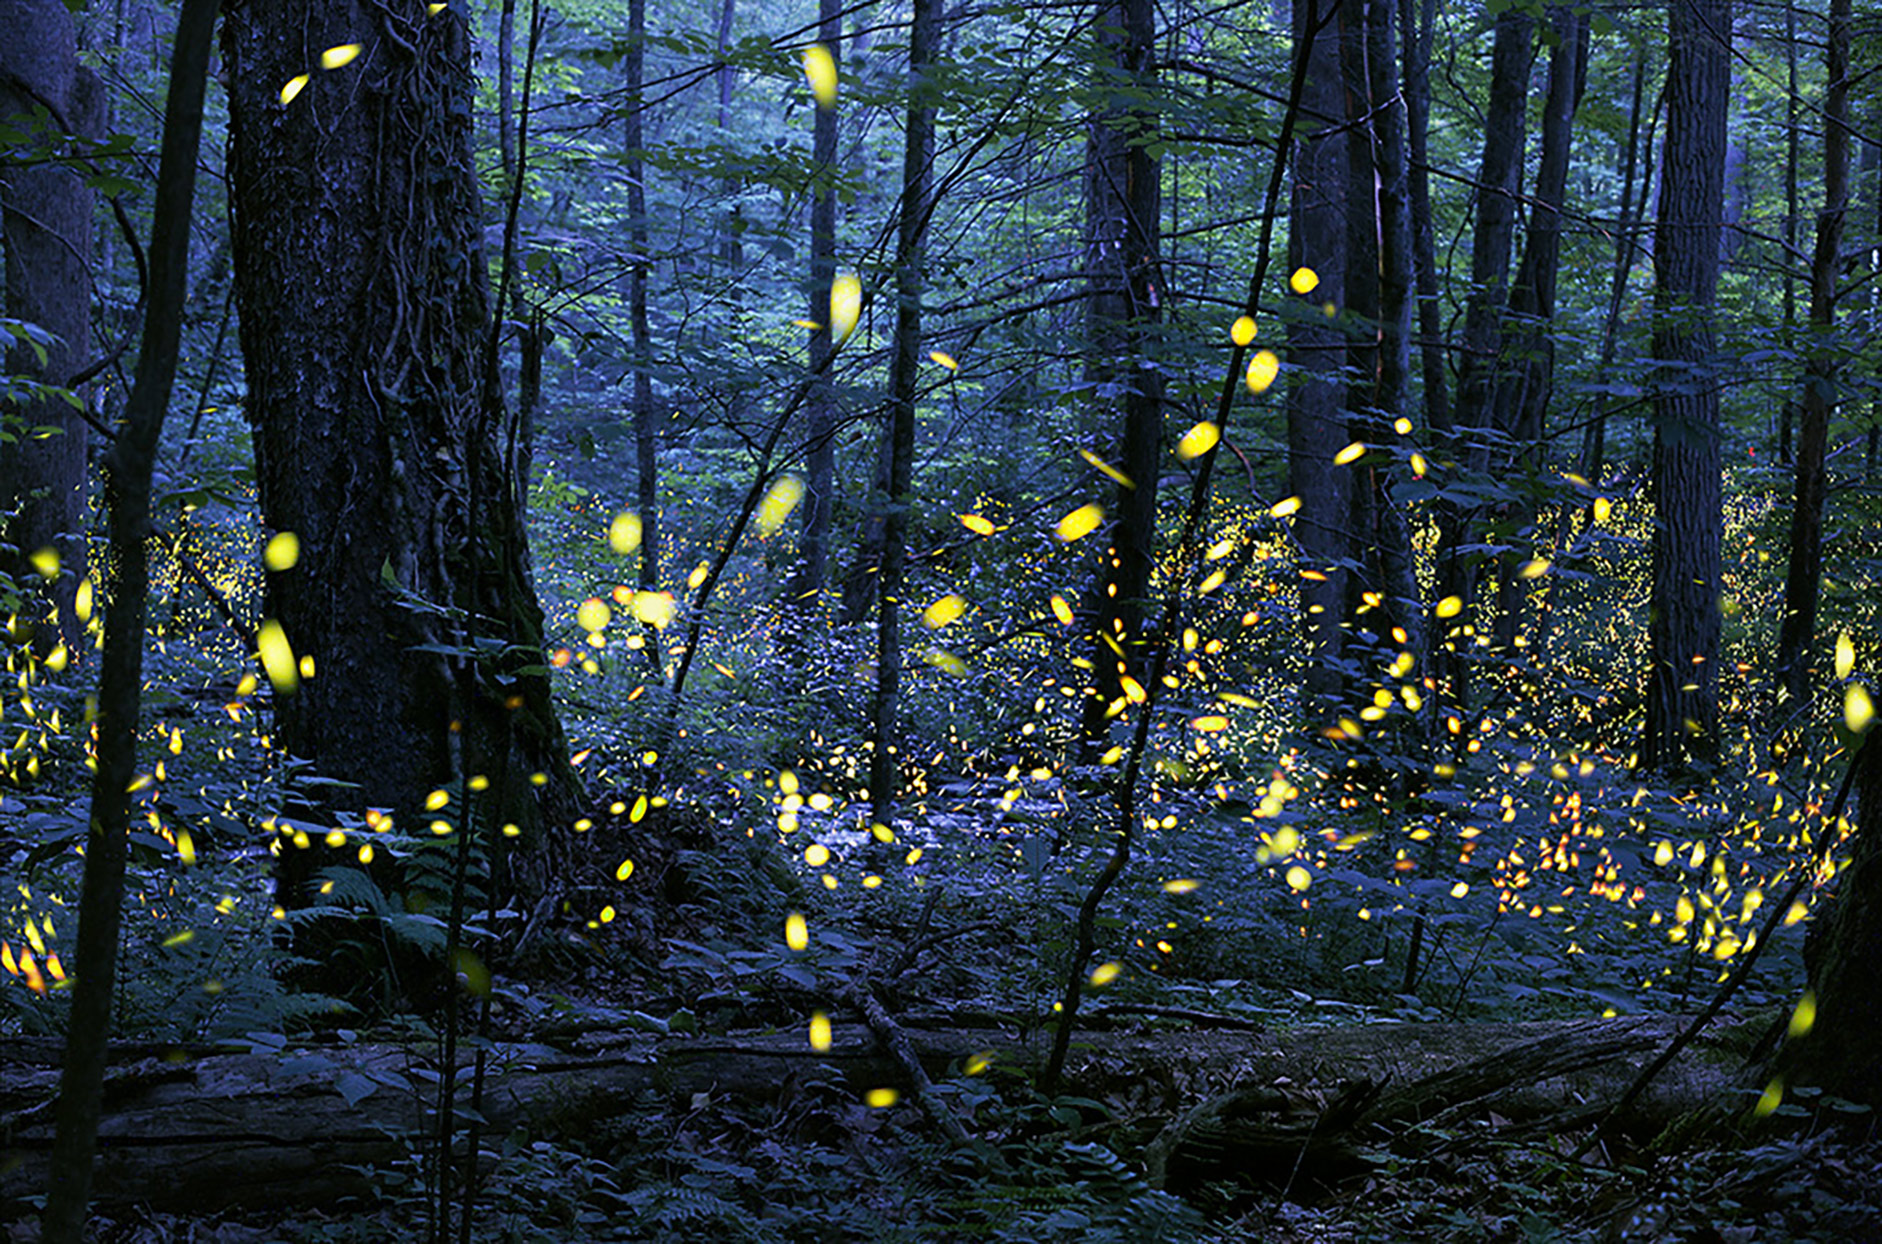 synchronous fireflies at night in great smoky mountains national park